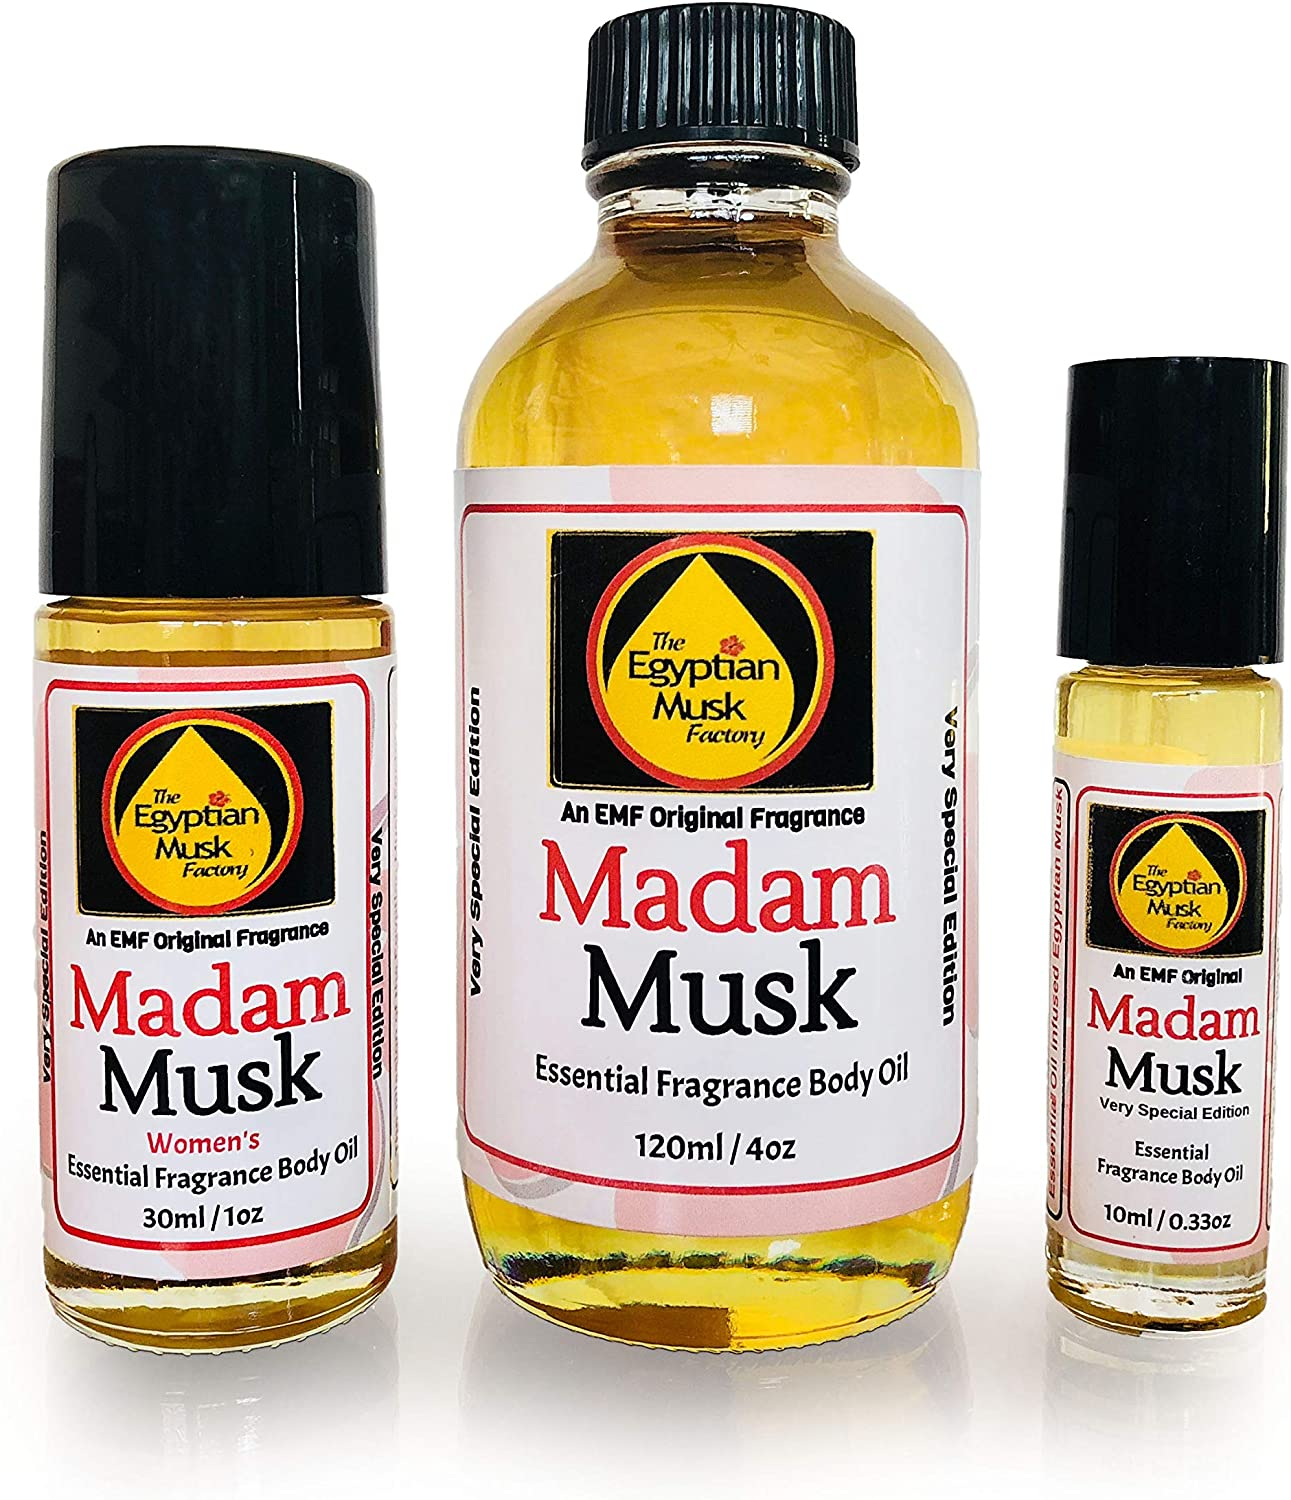 The Egyptian Musk Factory by WagsMarket - Madam Musk Perfume Oil, Essential Oil Infused Egyptian Musk Oil, Choose from 0.33oz Roll On to 4oz Glass Bottle (1oz Roll On)